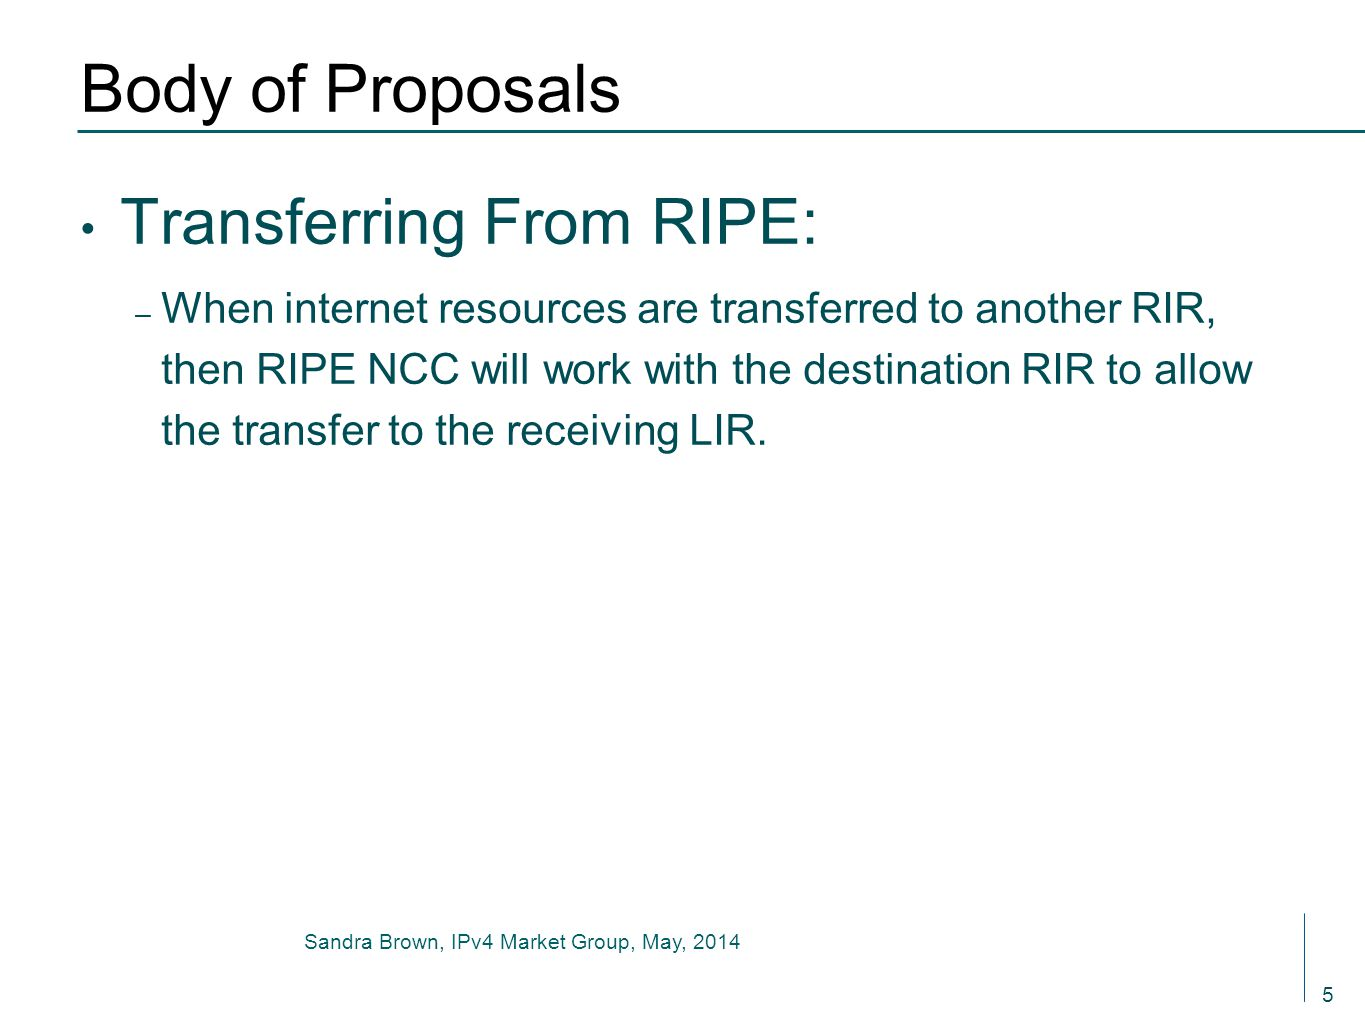 Sandra Brown, IPv4 Market Group, May, 2014 Body of Proposals Transferring From RIPE: – When internet resources are transferred to another RIR, then RIPE NCC will work with the destination RIR to allow the transfer to the receiving LIR.